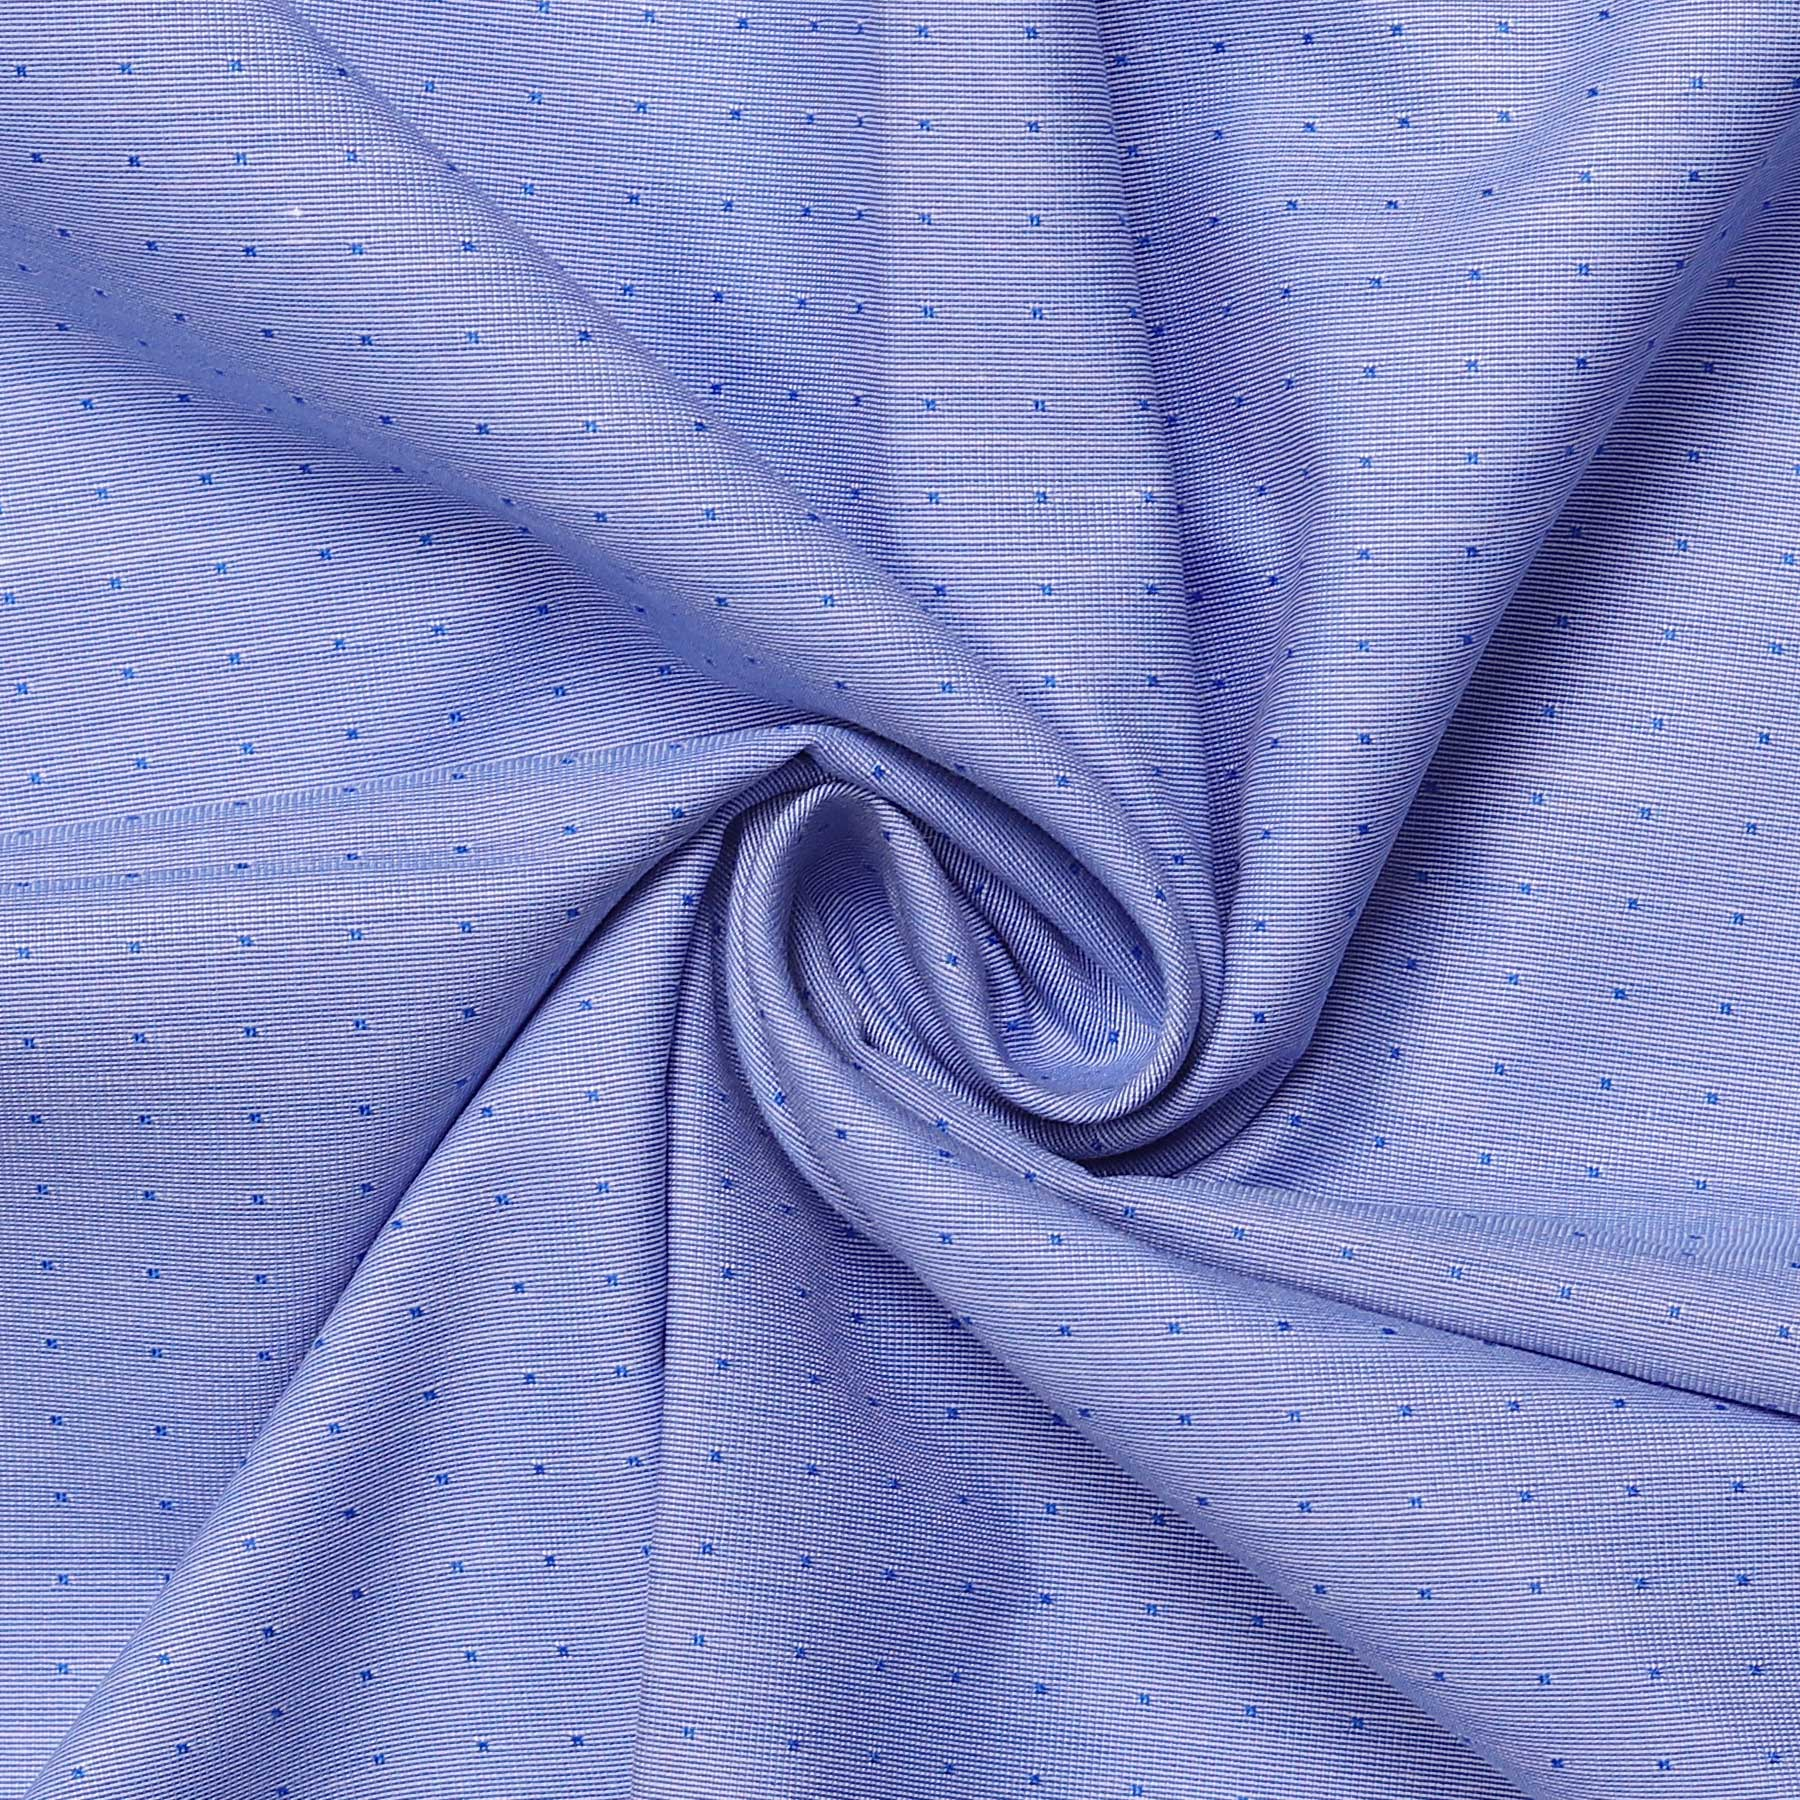 Dotted Blue Men's Cotton Unstitched Uniform Shirt Fabric for Corporate Office